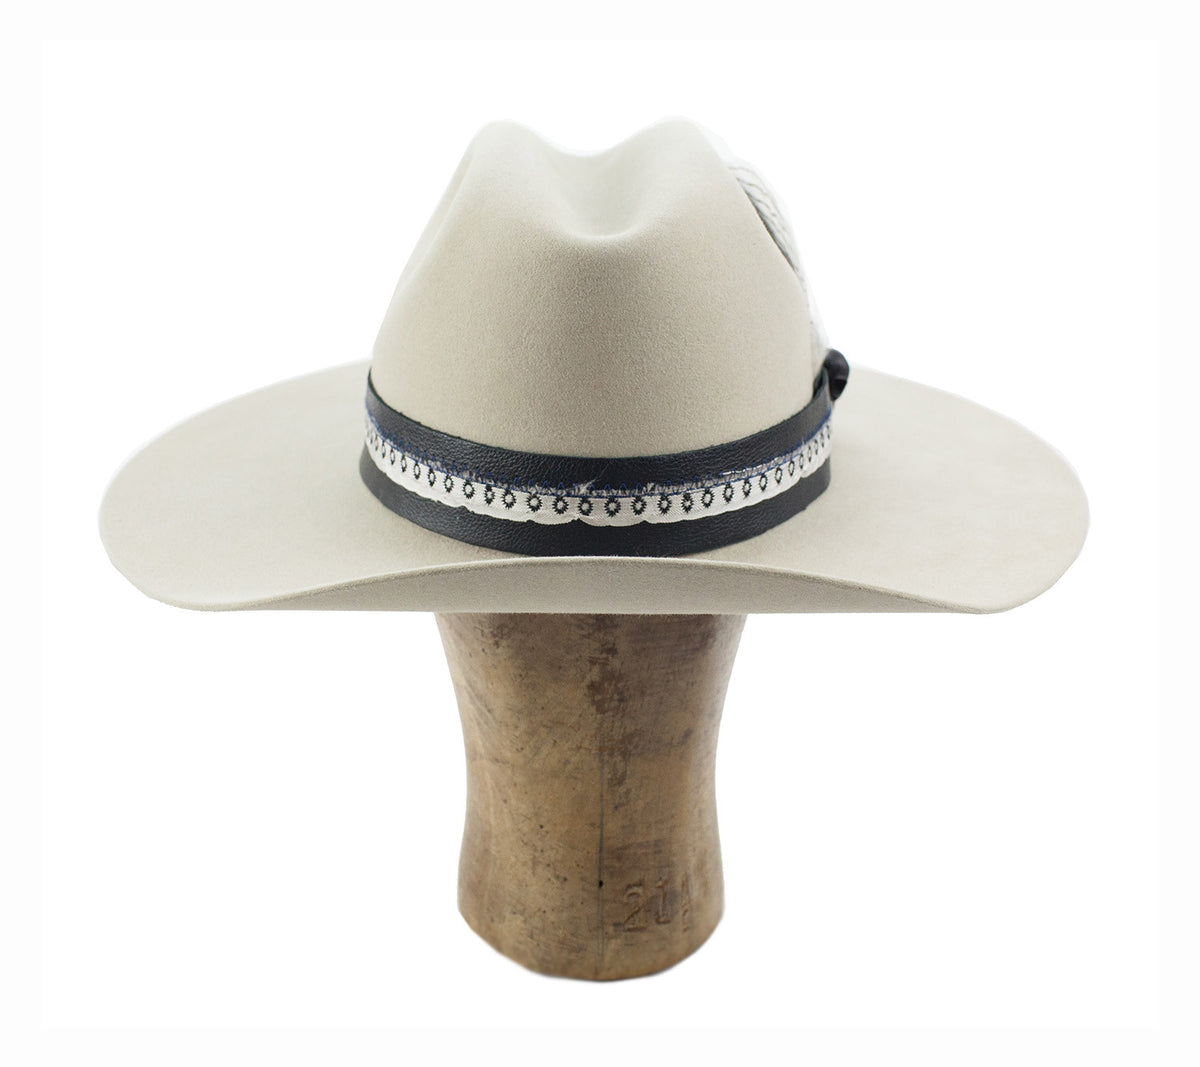 cattleman crown with a cut brim original hat by hatWRKS